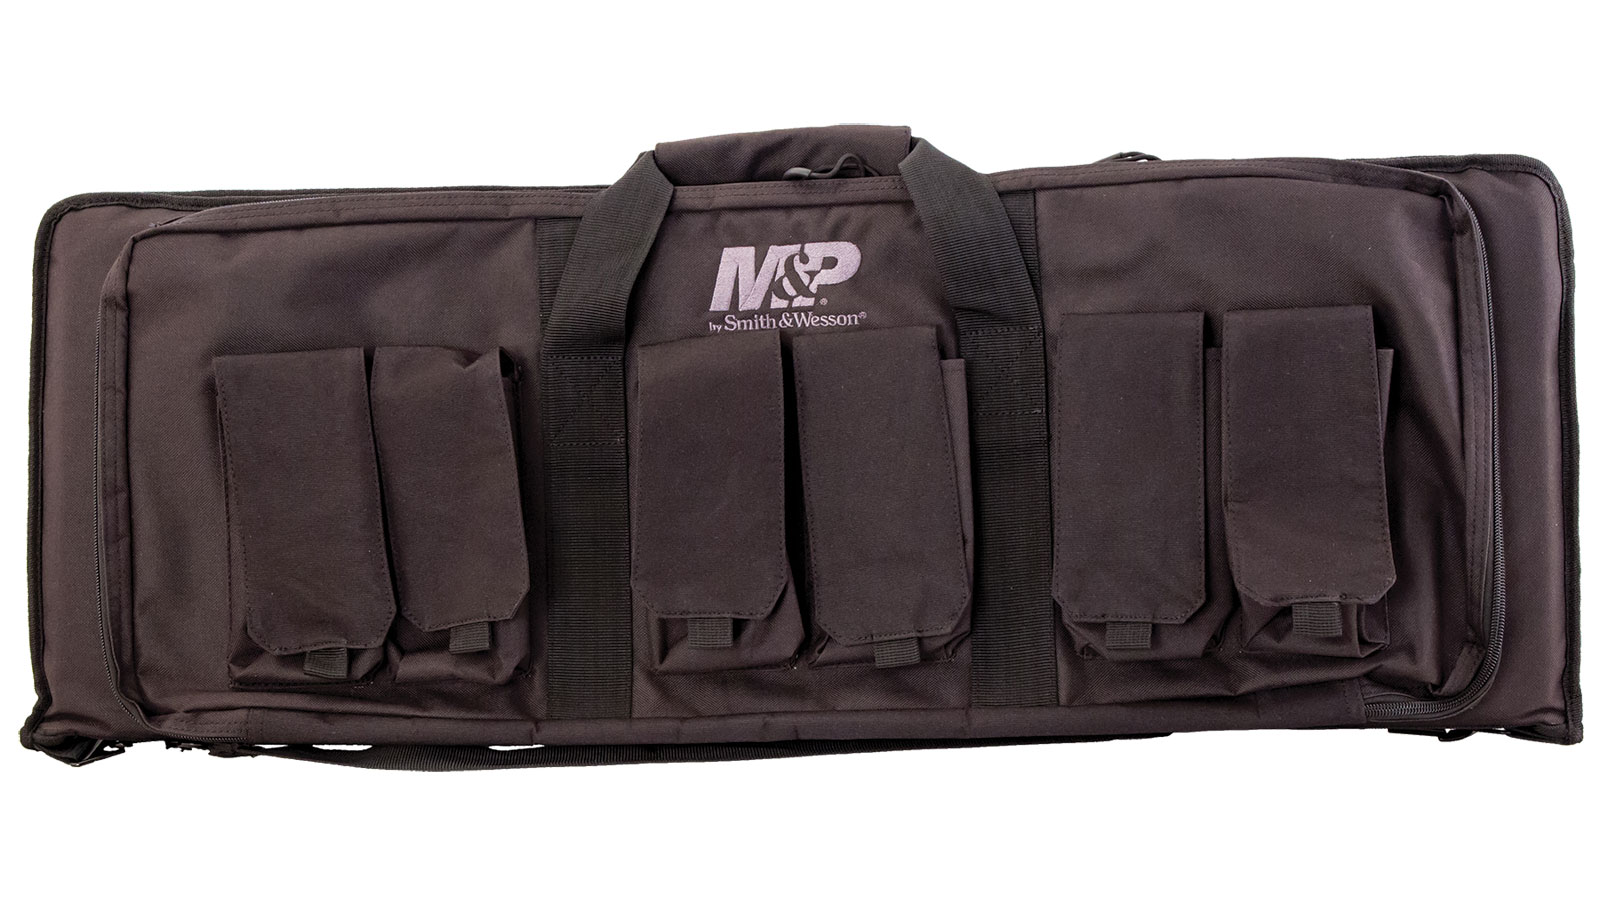 M&P Accessories 110024 Pro Tac Rifle|Shotgun Case Nylon Smooth 36 x 13 in.  x 3 in.  in.